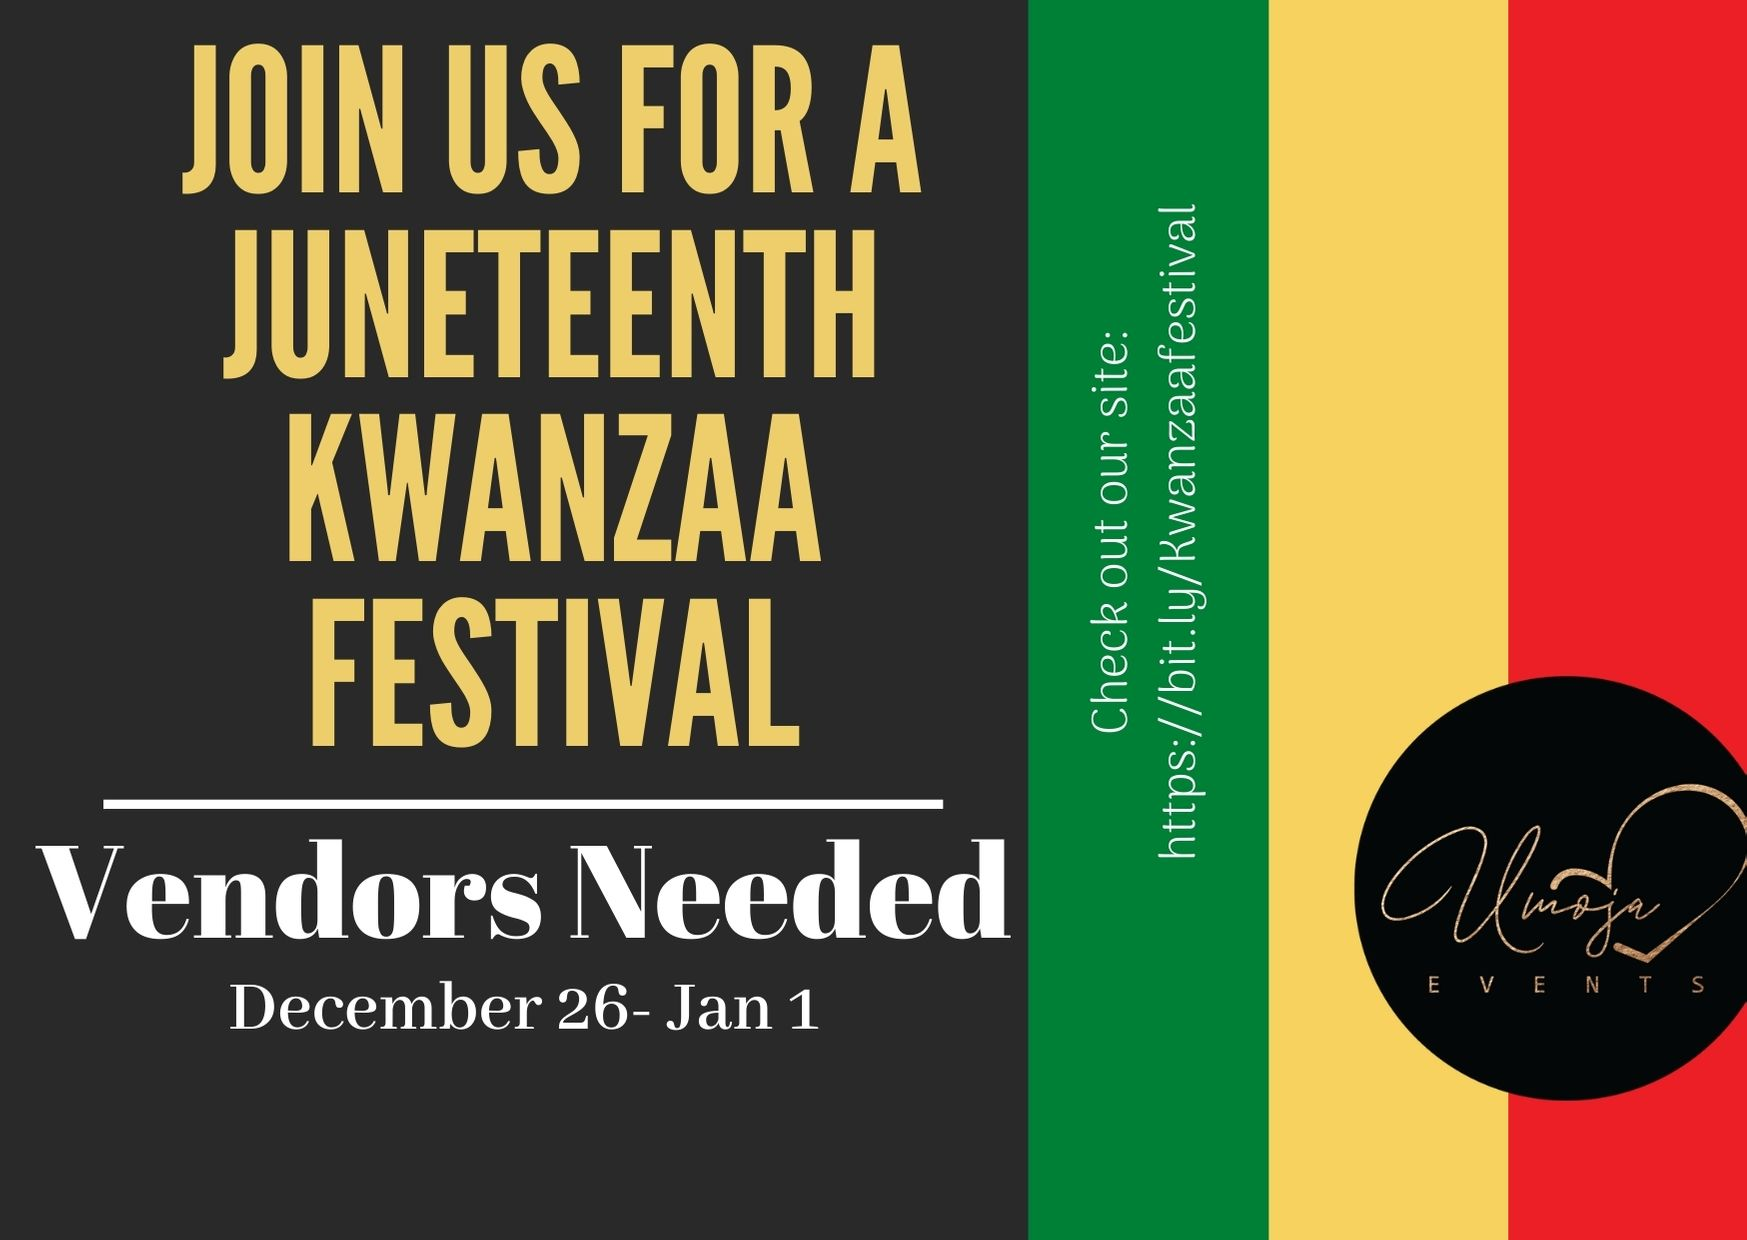 The Kwanzaa Festival and Online Market Starts December 26, to Raise Funds for Black Businesses Hit by Covid-19